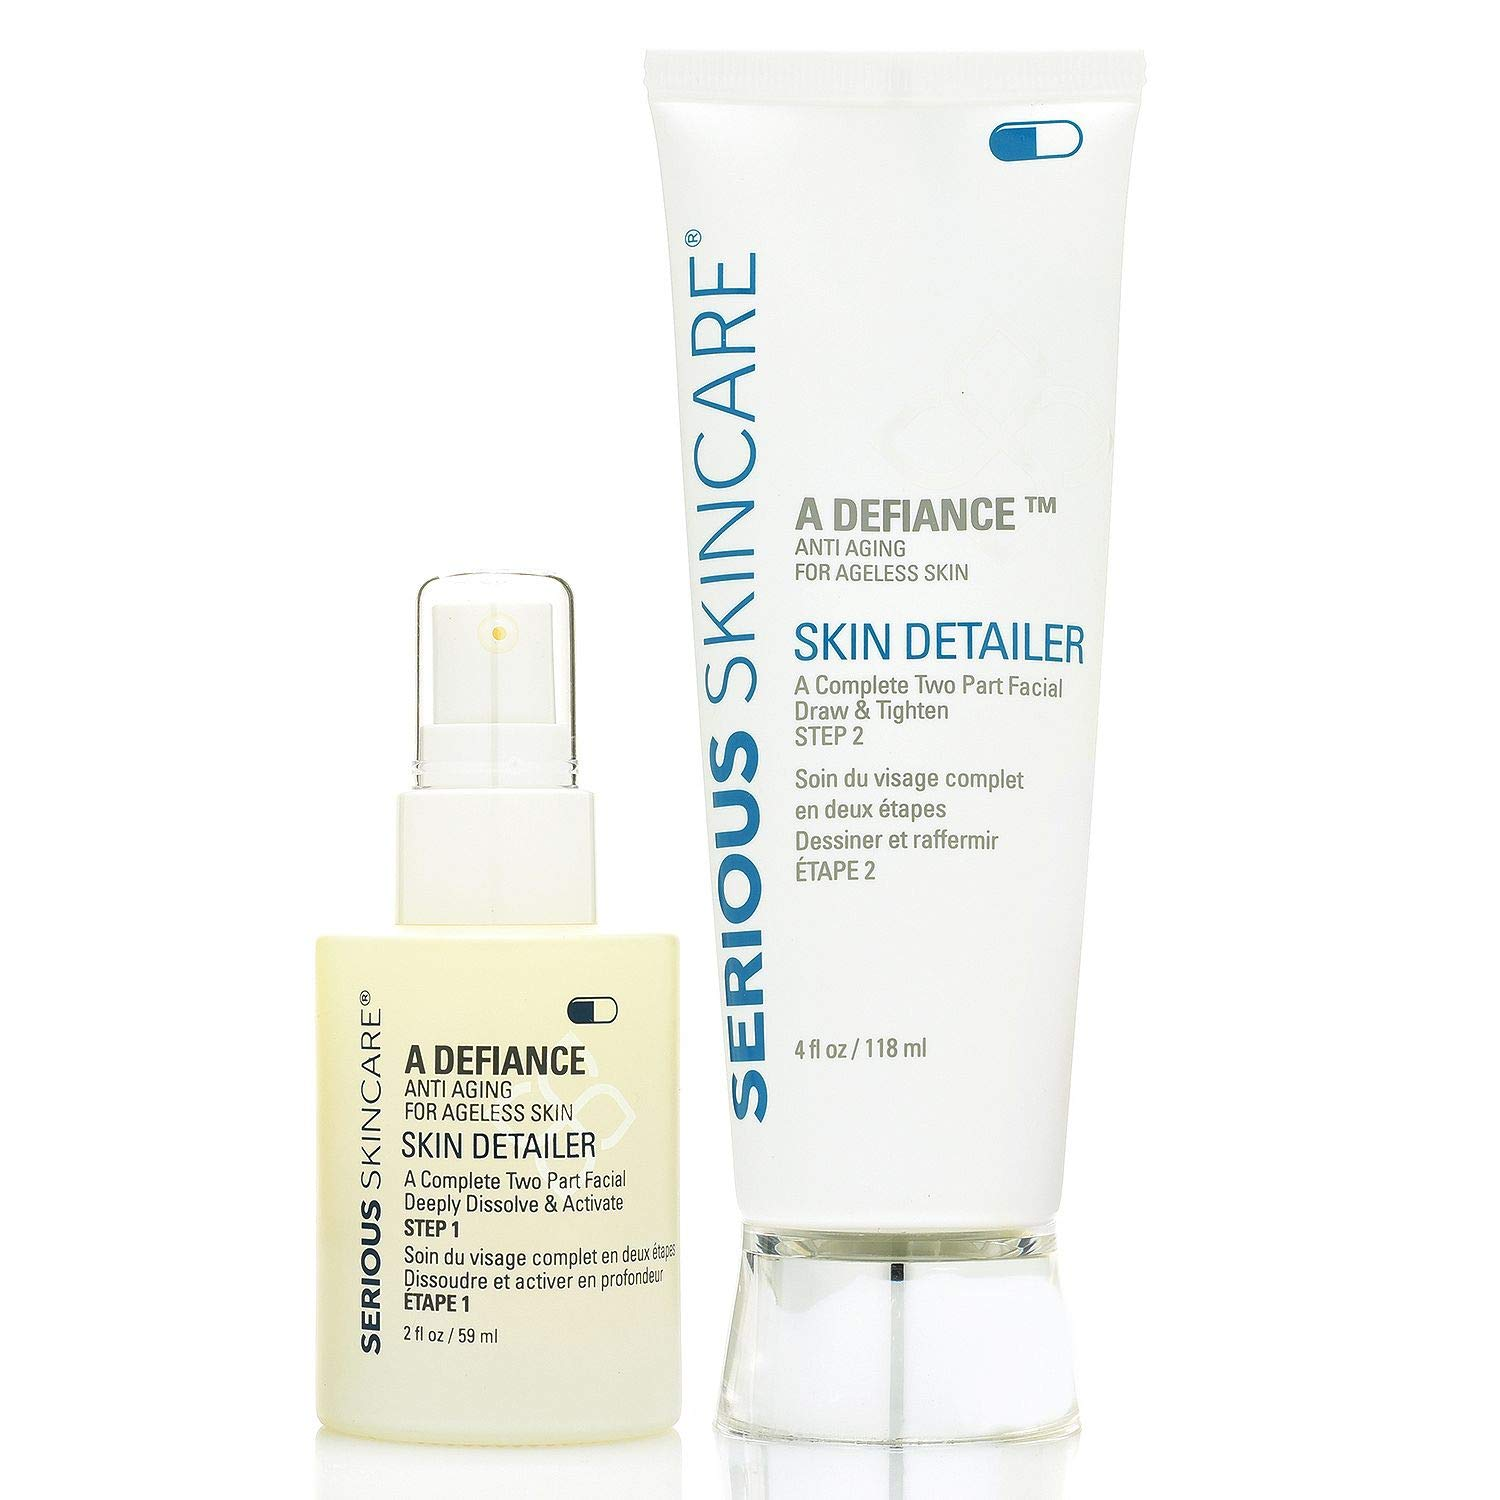 Serious Skin Care a Defiance Anti Aging a Complete Two Part Facial Draw and Tighten ( Skin Detailer Step 1 2. Fl Oz & Skin Detailer Step 2 4. Fl Oz)